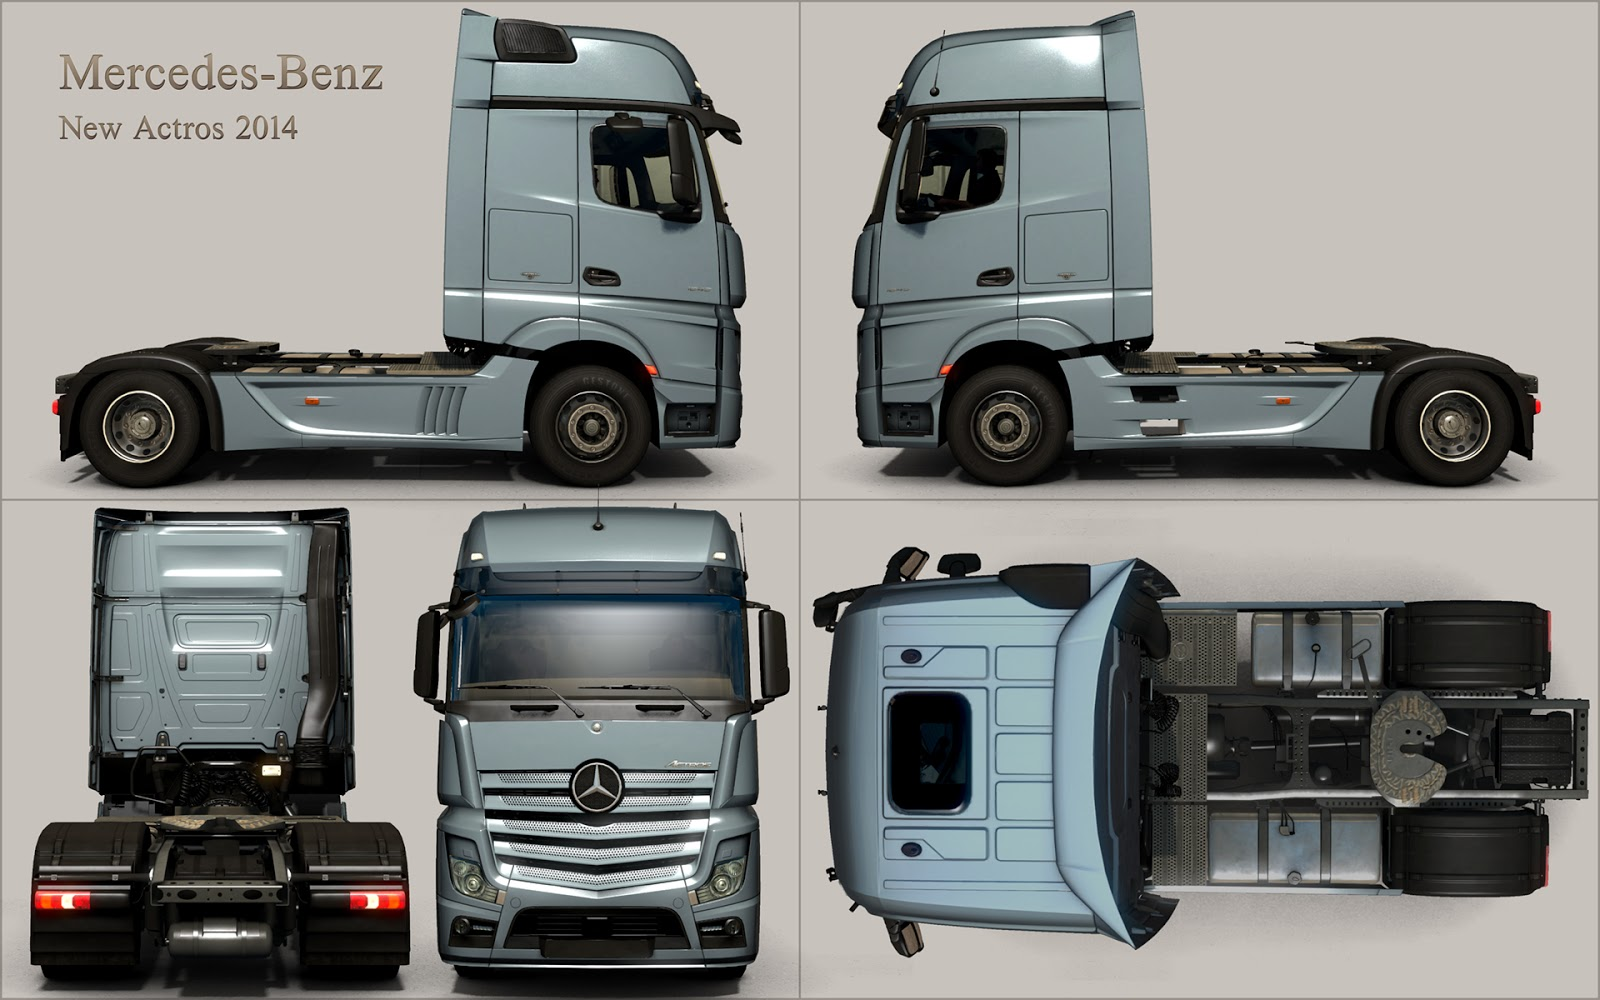 scs softwares blog mercedesbenz joining the euro truck